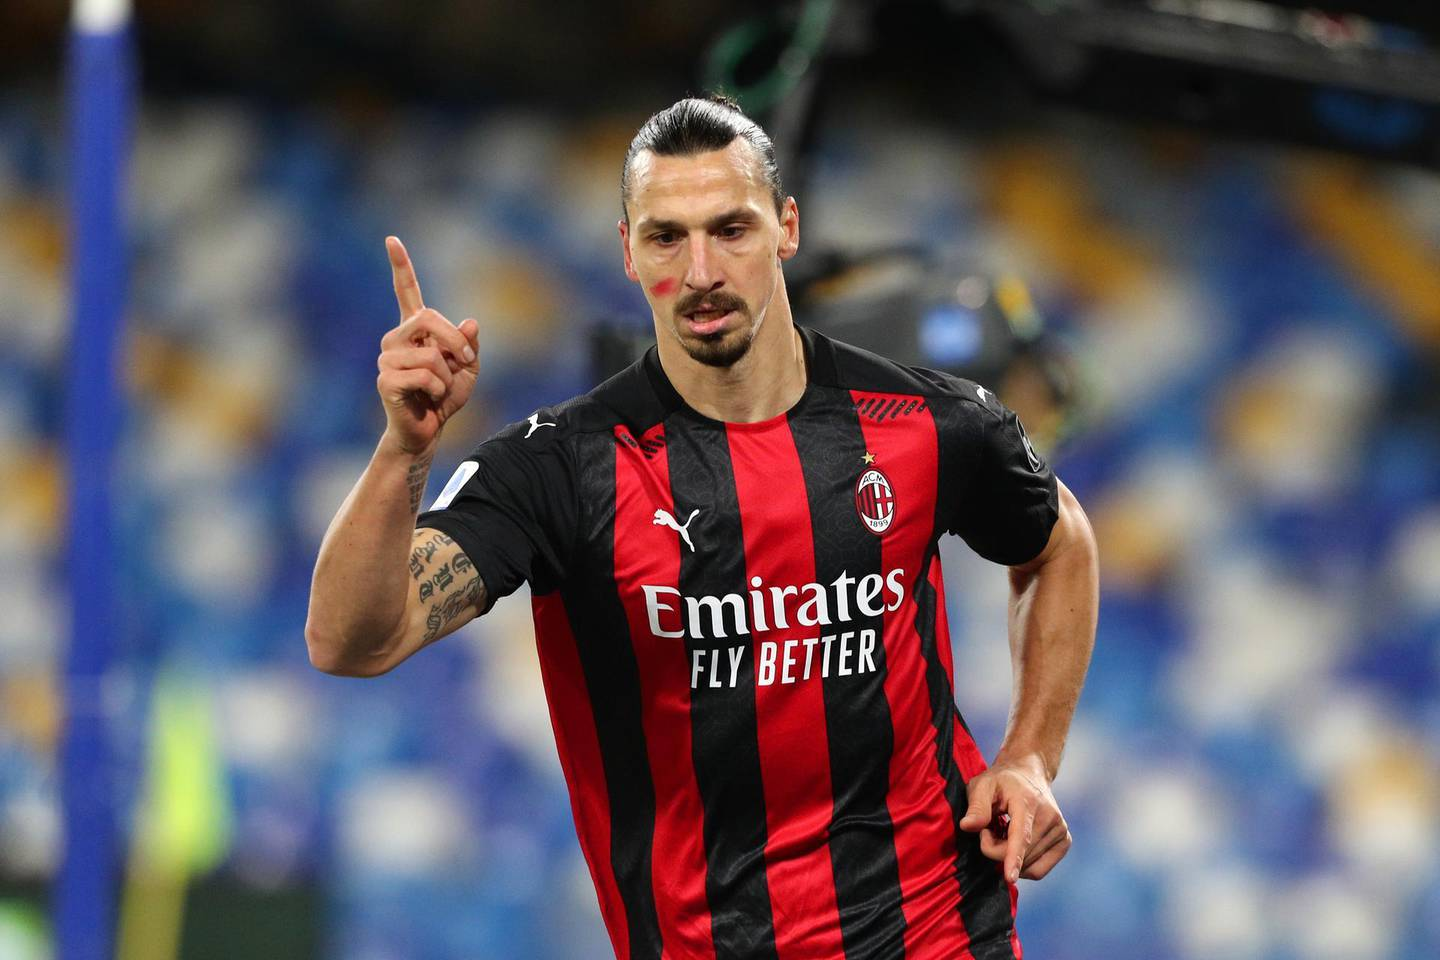 NAPLES, ITALY - NOVEMBER 22: Zlatan Ibrahimovic of A.C. Milan celebrates after scoring their team's second goal during the Serie A match between SSC Napoli and AC Milan at Stadio San Paolo on November 22, 2020 in Naples, Italy. Sporting stadiums around Italy remain under strict restrictions due to the Coronavirus Pandemic as Government social distancing laws prohibit fans inside venues resulting in games being played behind closed doors. (Photo by Francesco Pecoraro/Getty Images)